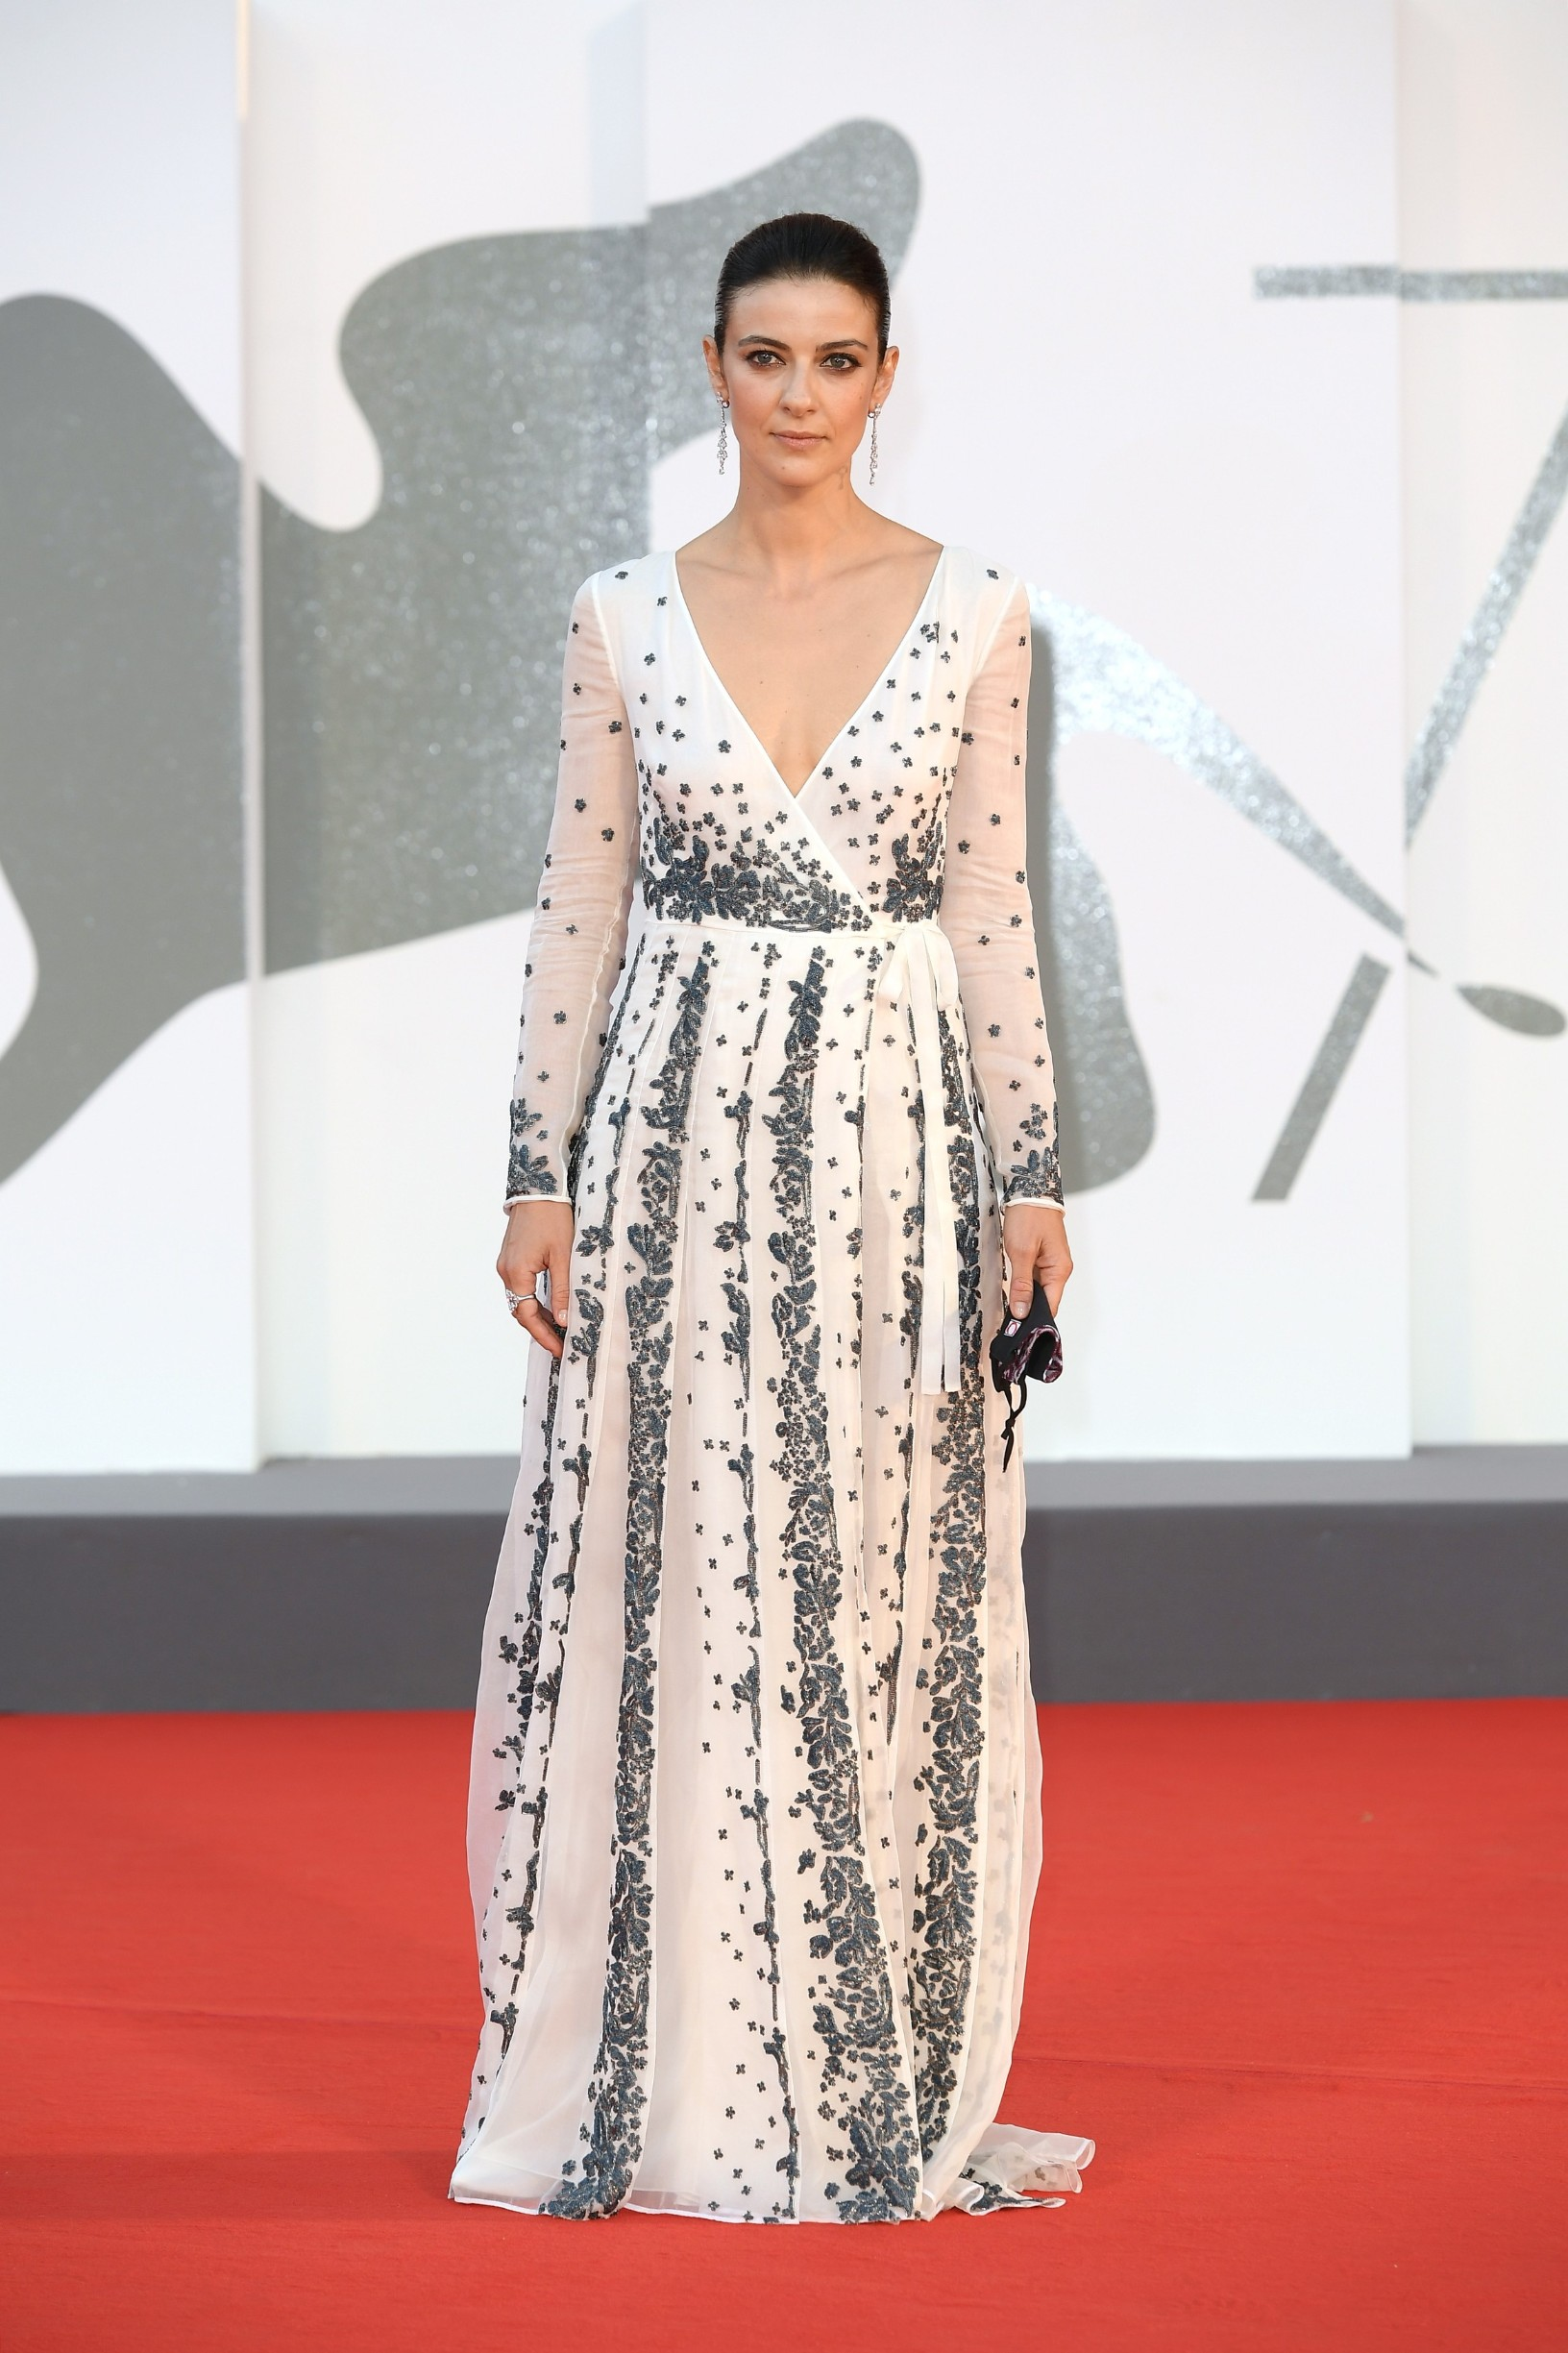 Barbara Ronchi during 'Padrenostro' premiere, 77th Venice International Film Festival, Italy - 04 Sep 2020,Image: 556375914, License: Rights-managed, Restrictions: UK and ITALY OUT - Fee Payable Upon Reproduction - For queries contact Avalon.red - sales@avalon.red London: +44 (0) 20 7421 6000 Los Angeles: +1 (310) 822 0419 Berlin: +49 (0) 30 76 212 251, Model Release: no, Credit line: Avalon.red / Avalon Editorial / Profimedia